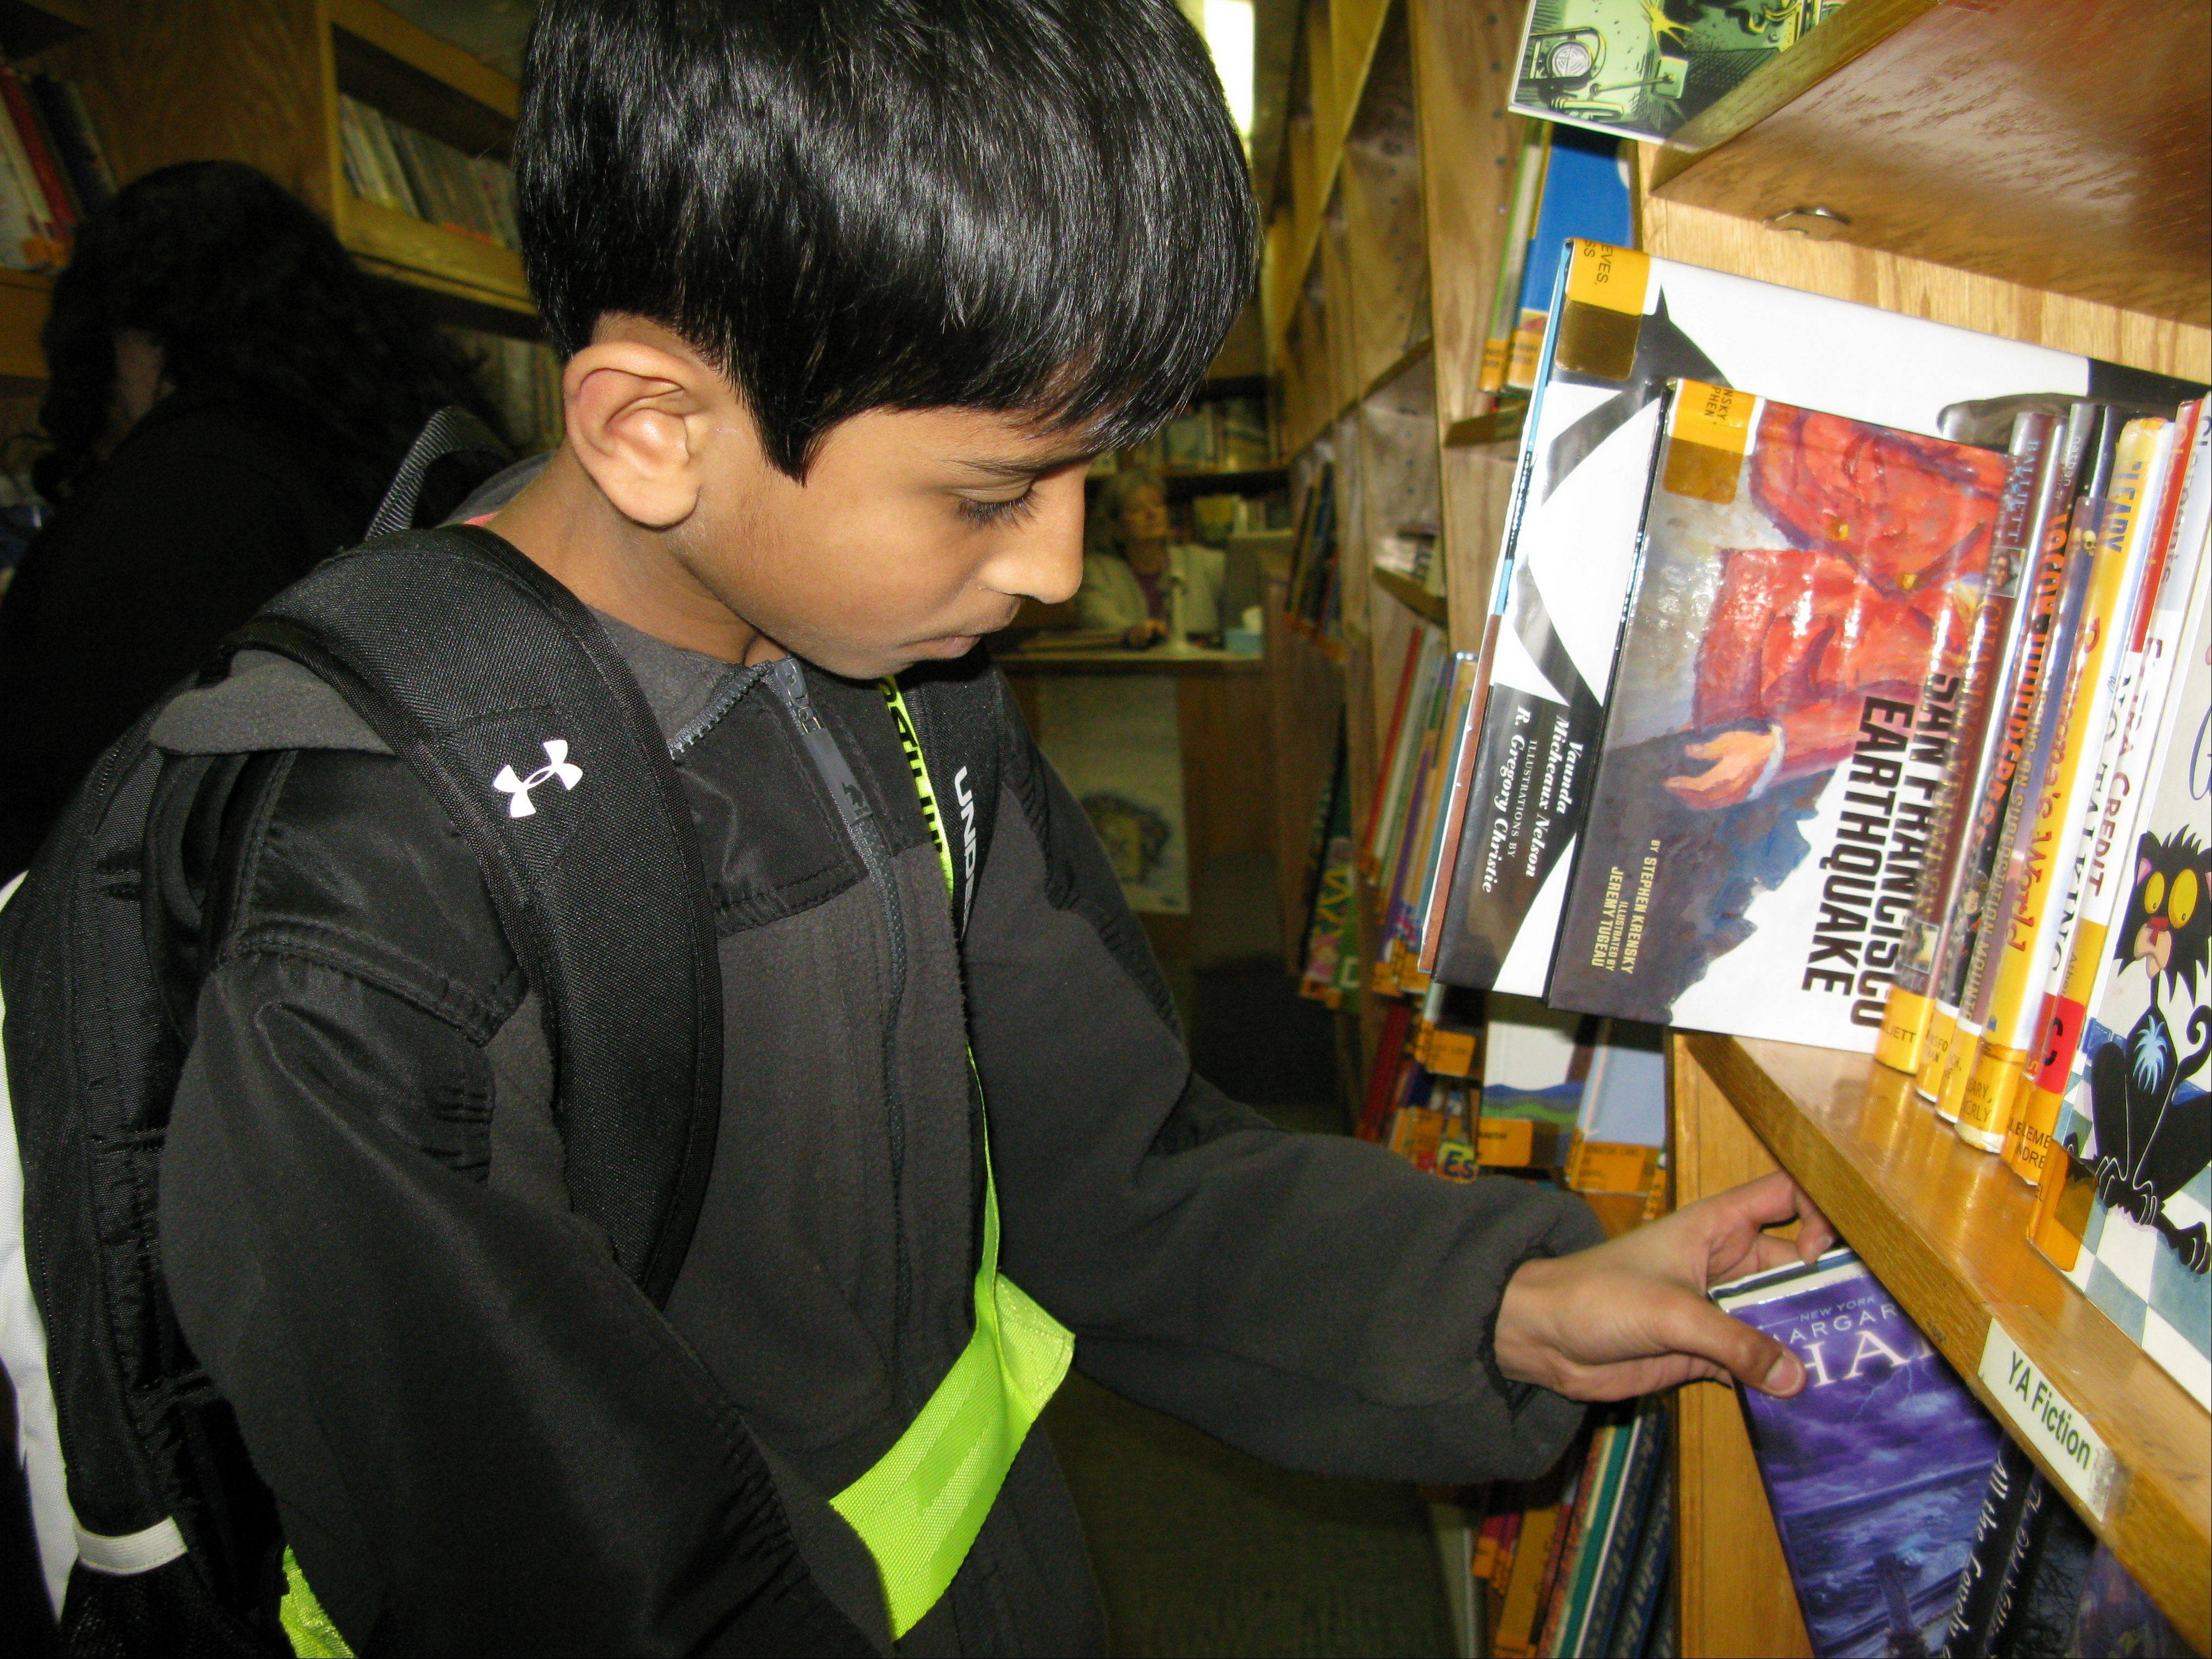 Shiv Patel, fifth-grader at Devonshire School in Des Plaines, checks out the children's fiction collection in the Des Plaines Public Library's bookmobile for the last time.